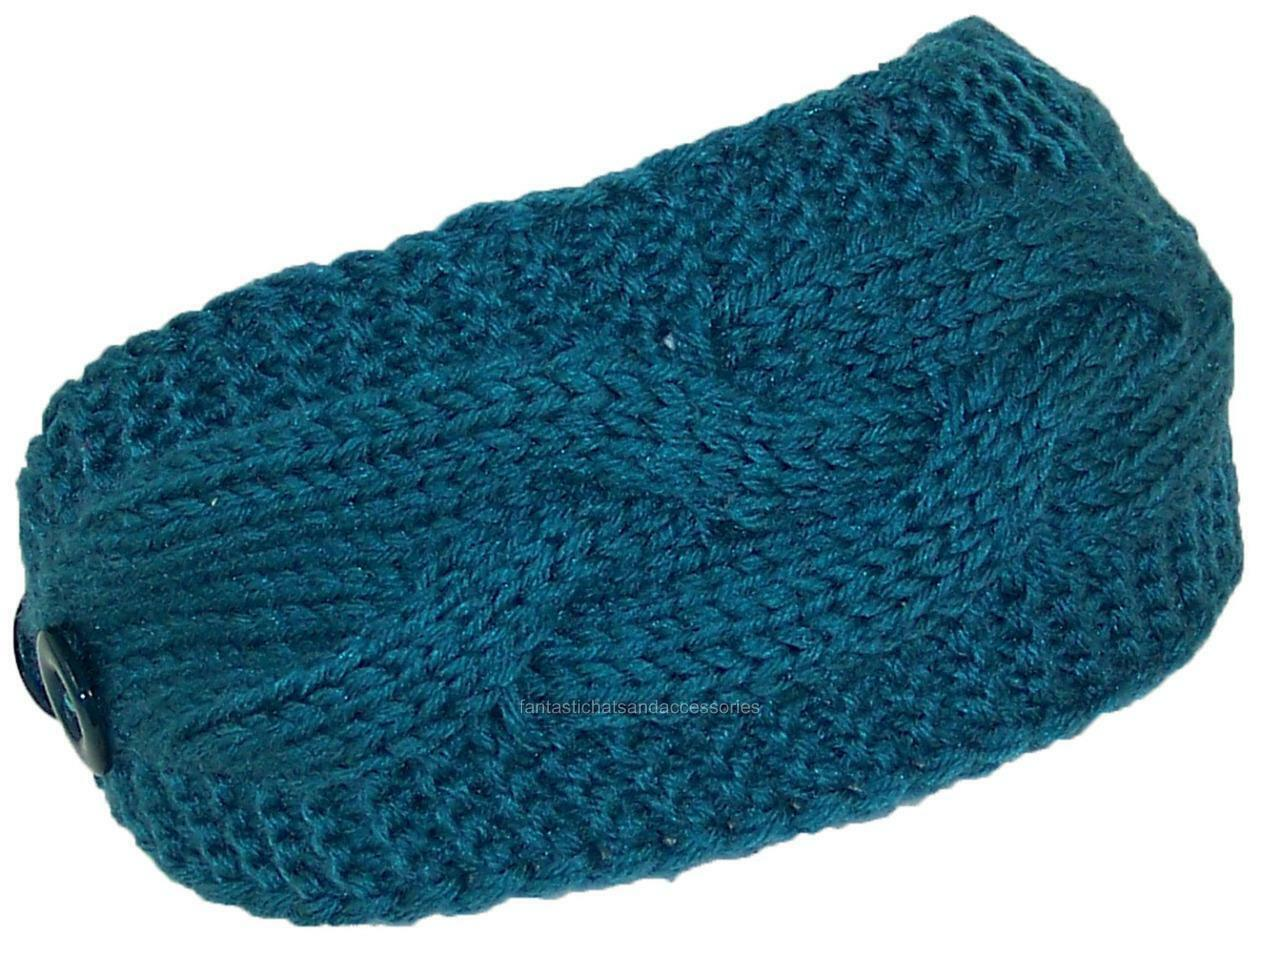 Best Winter Hats Solid Color Cable & Garter Stitch Knit Headband - Teal